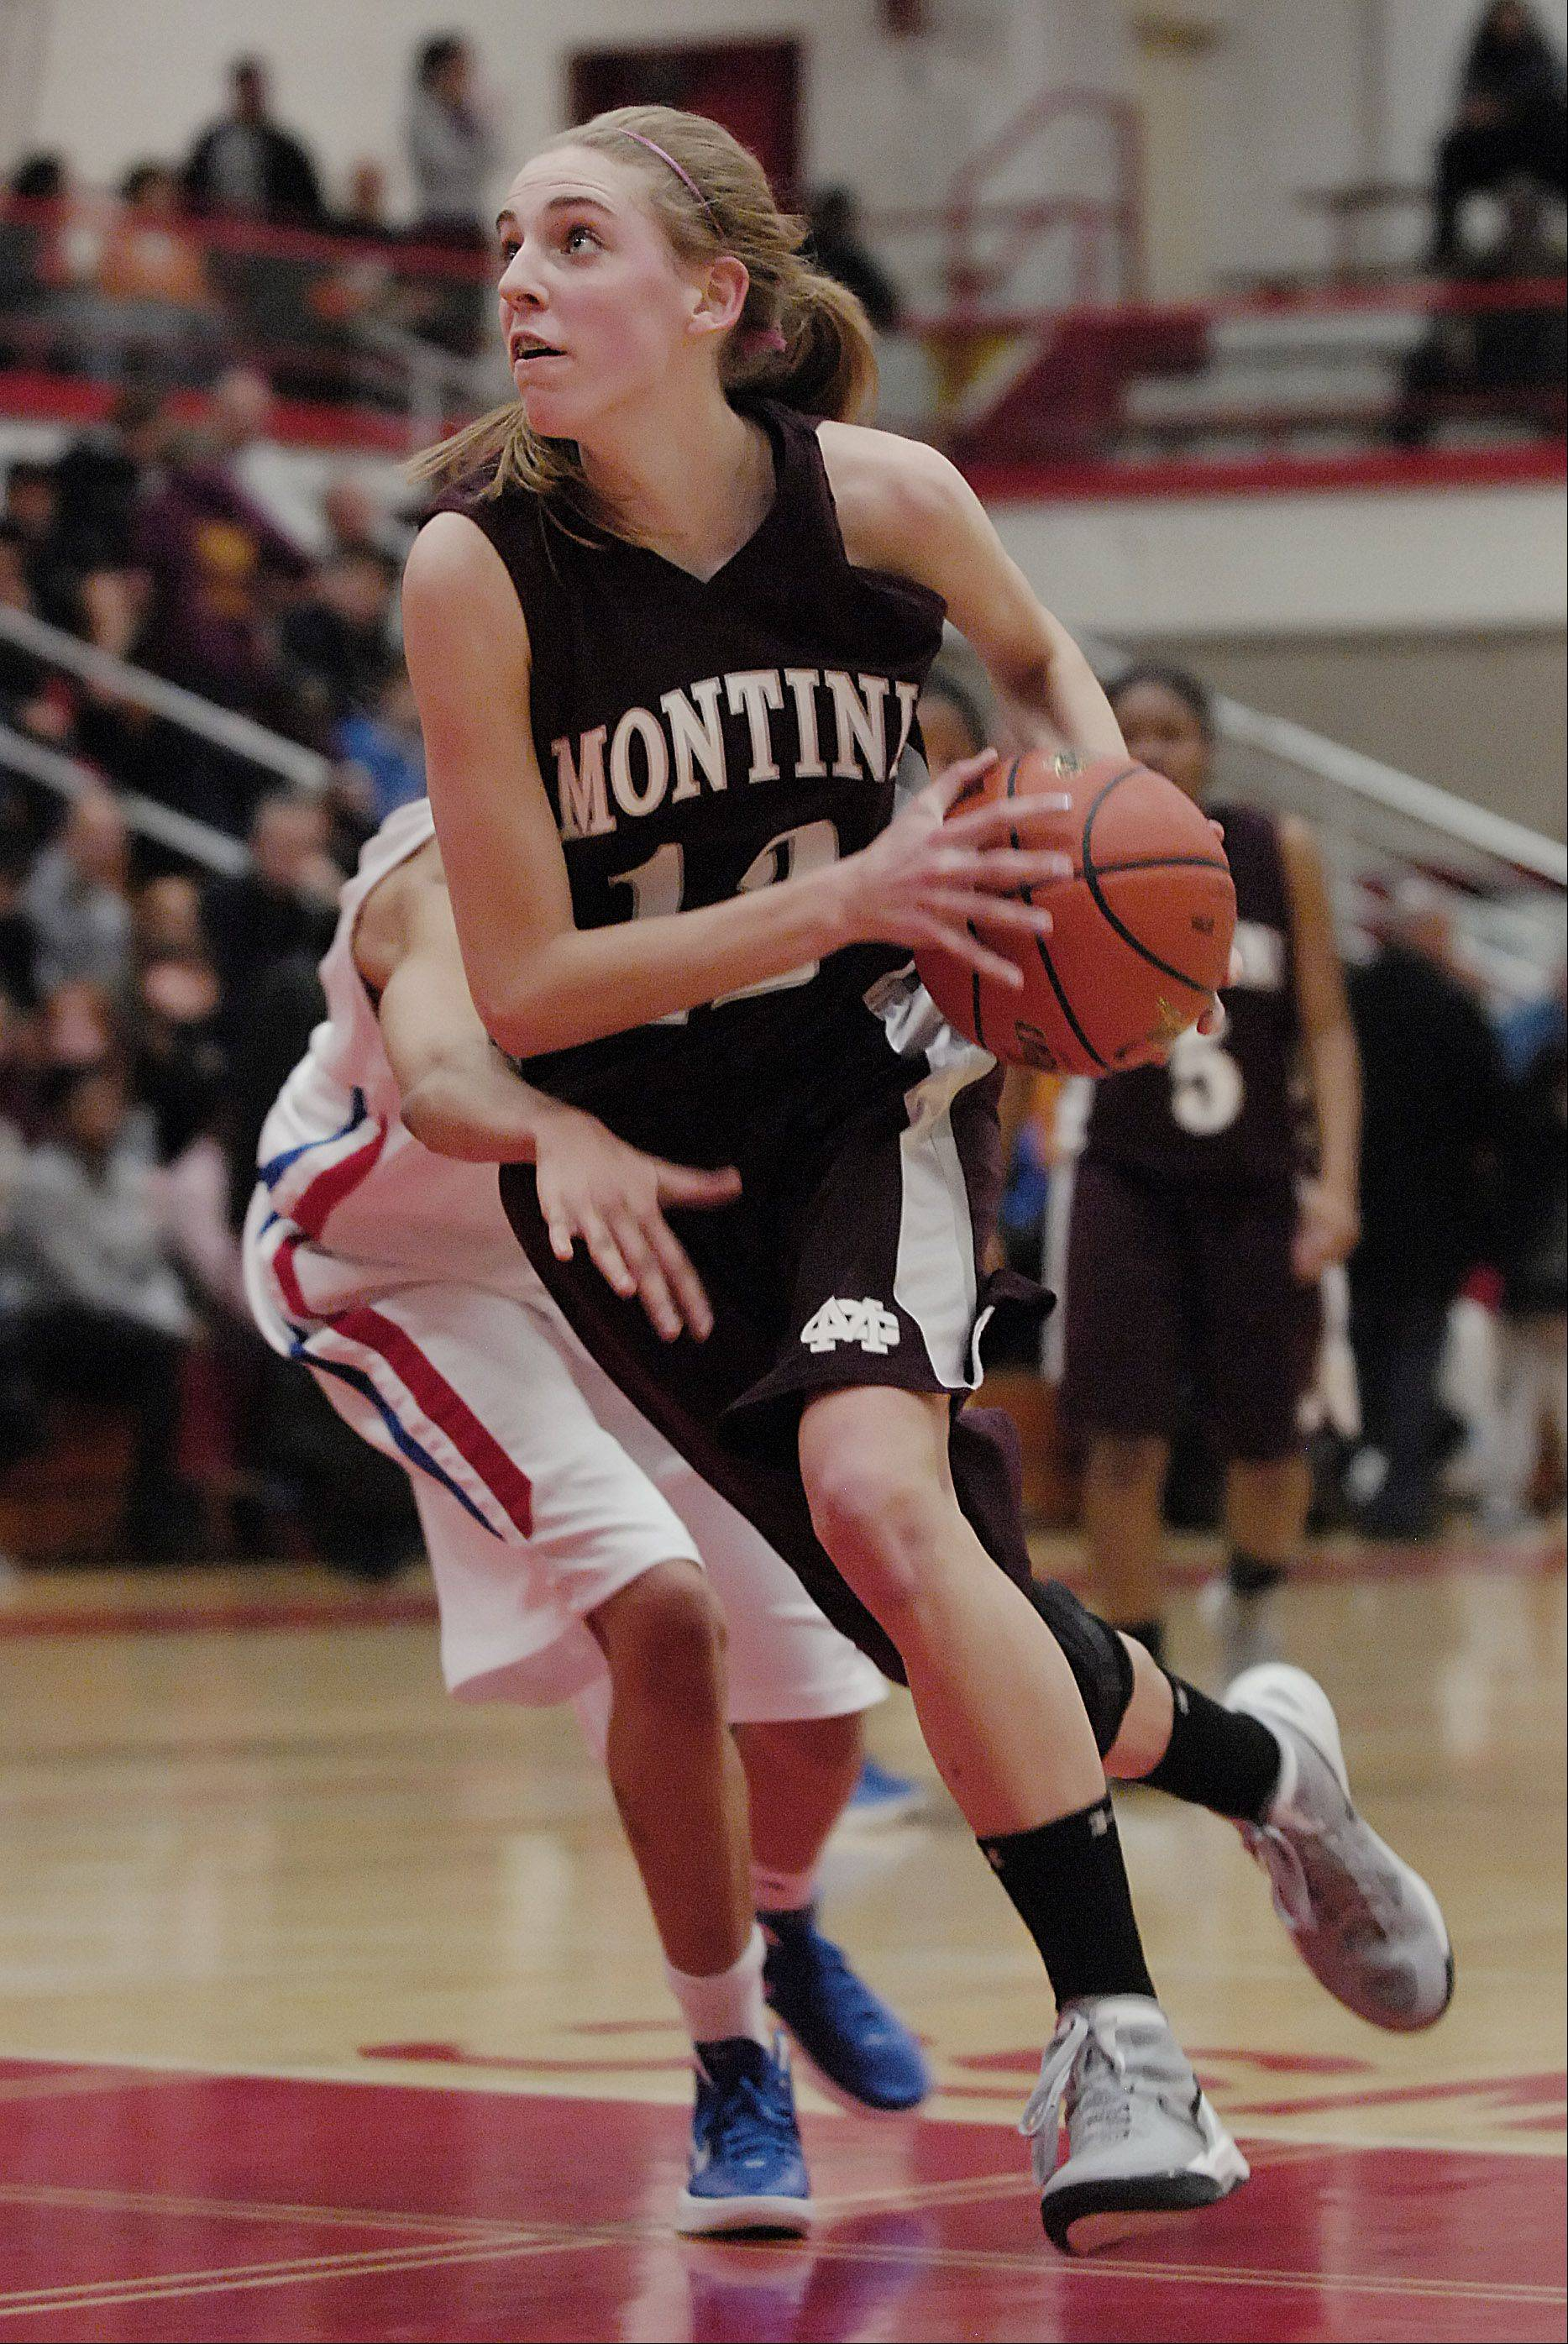 Kelly Karlis of Montini drives to the hoop during their victory over Crane in the girls Class 3A supersectional basketball game Monday, February 27, 2012 at Hinsdale Central.